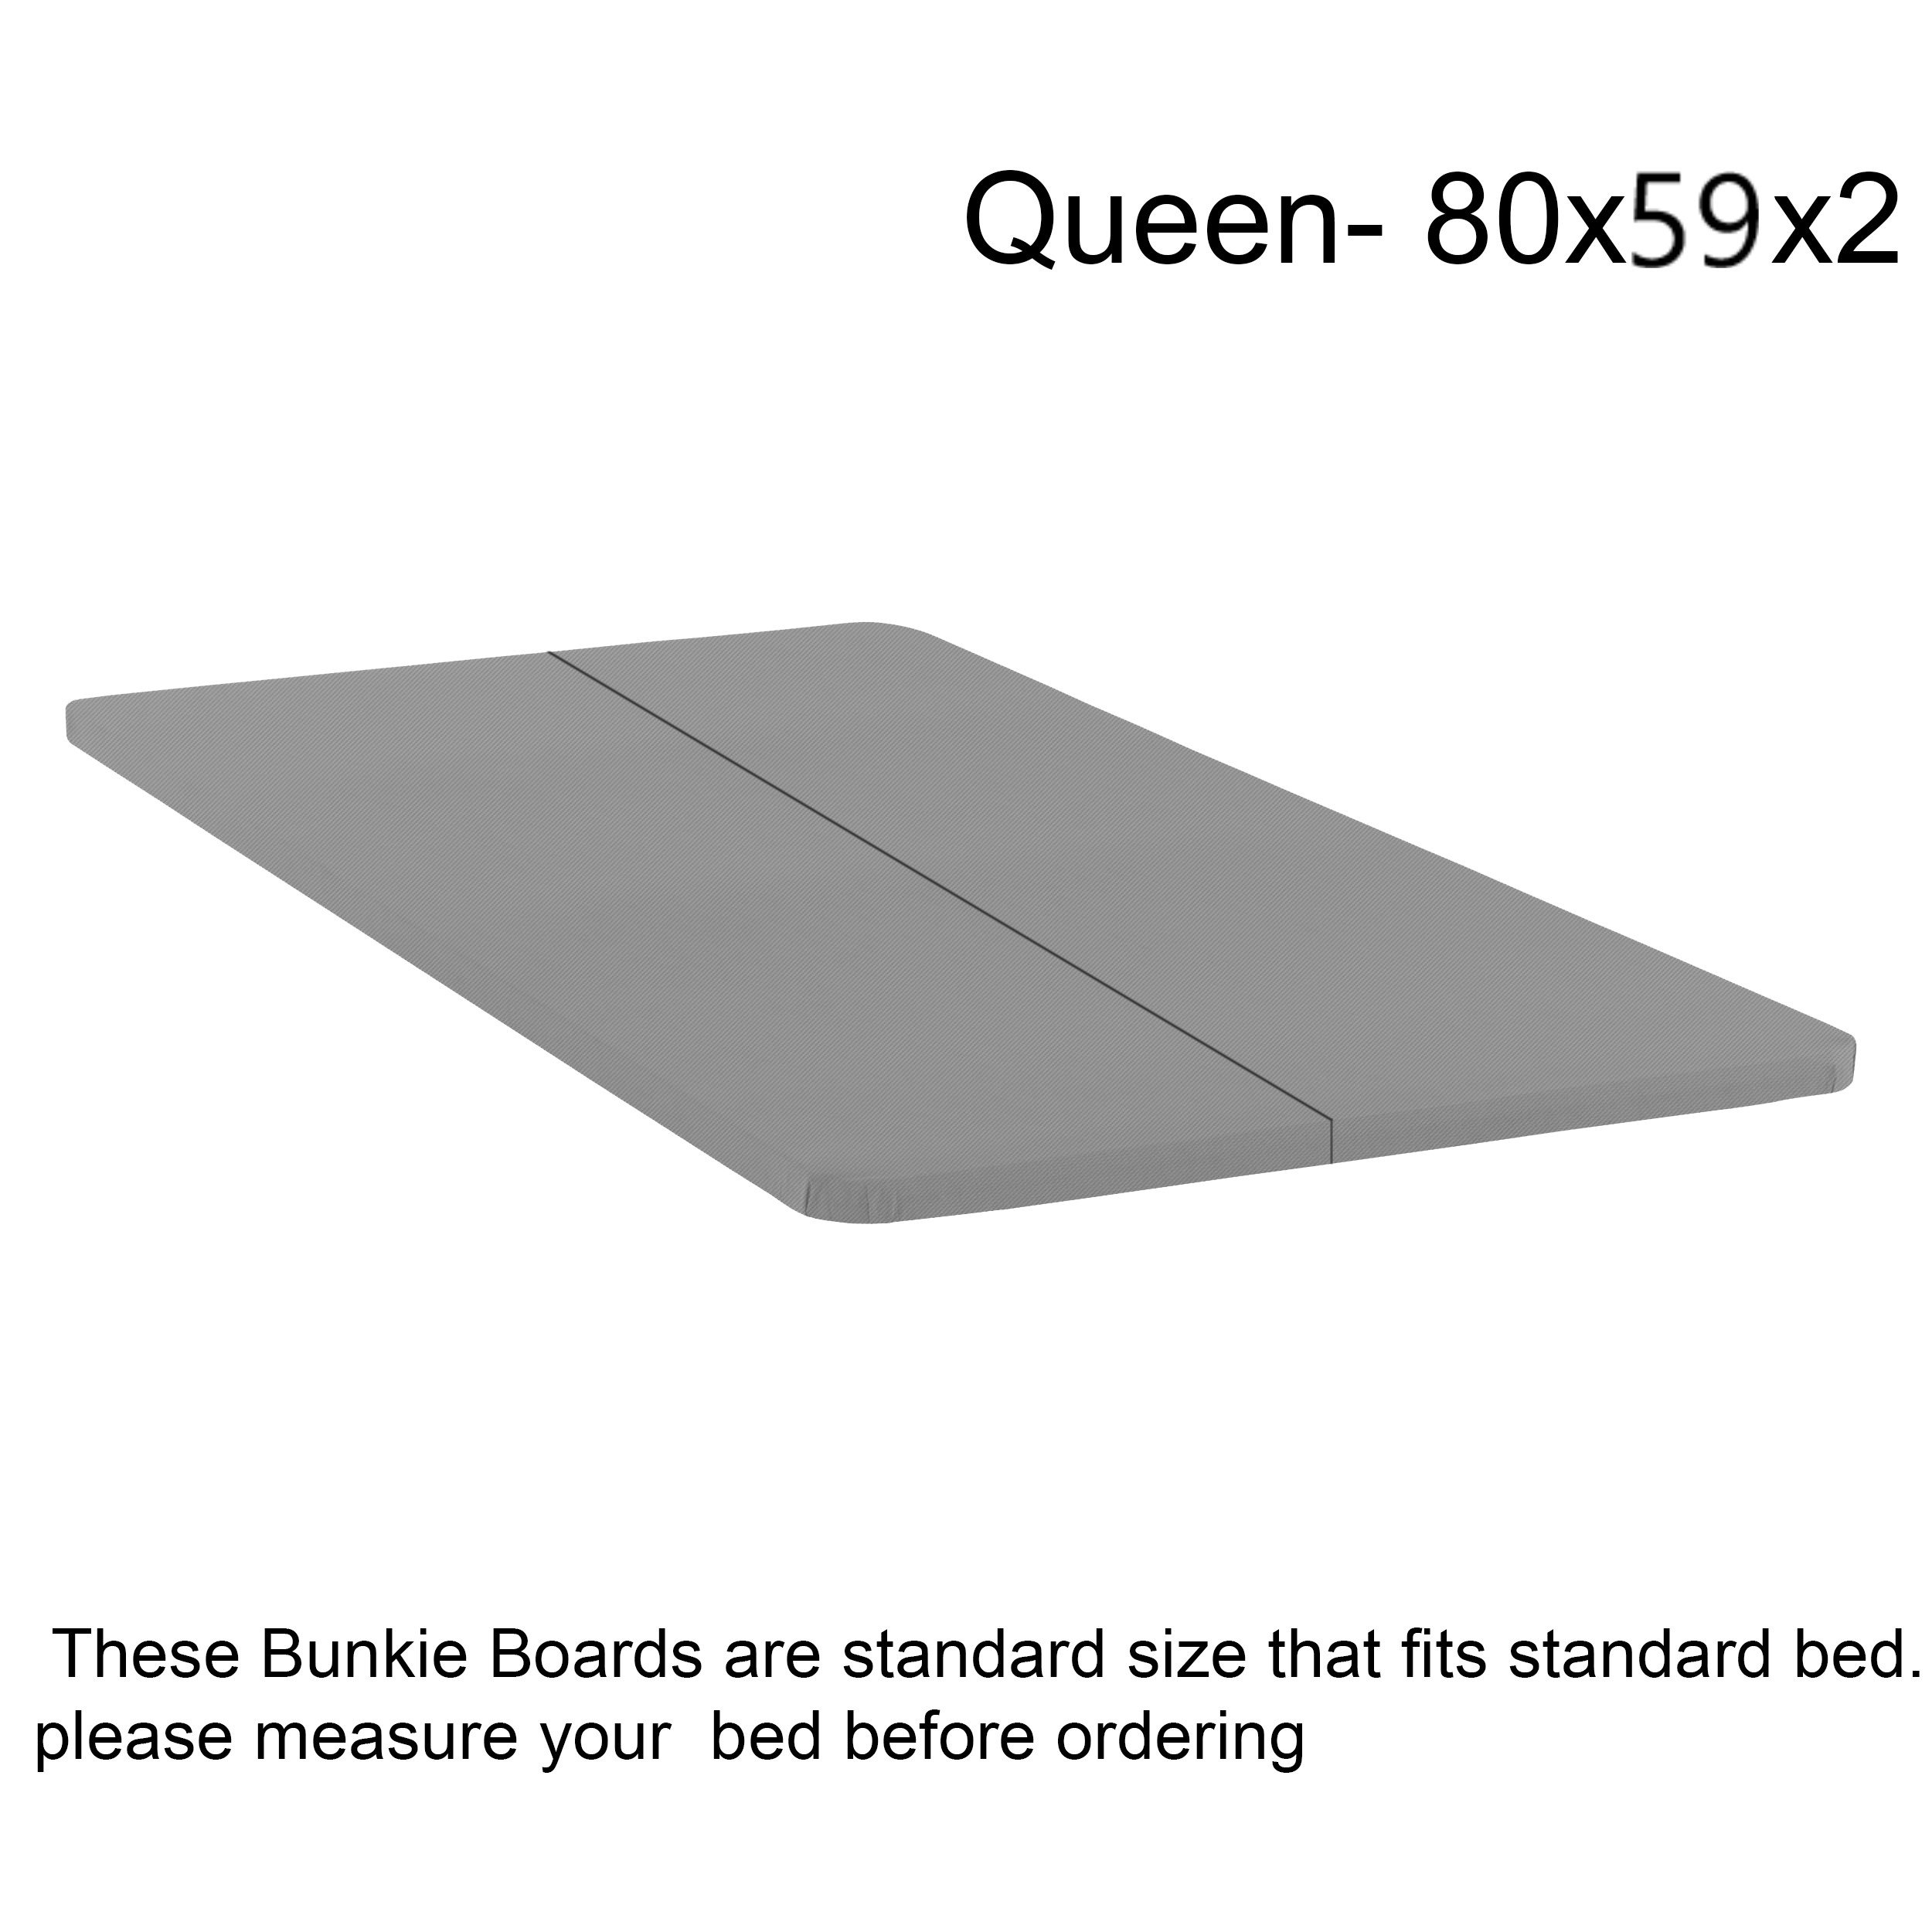 Mattress Solution BBy-5/0S Fully Assembled Foundation Bunkie Board, Split, Queen, Size by Mattress Solution